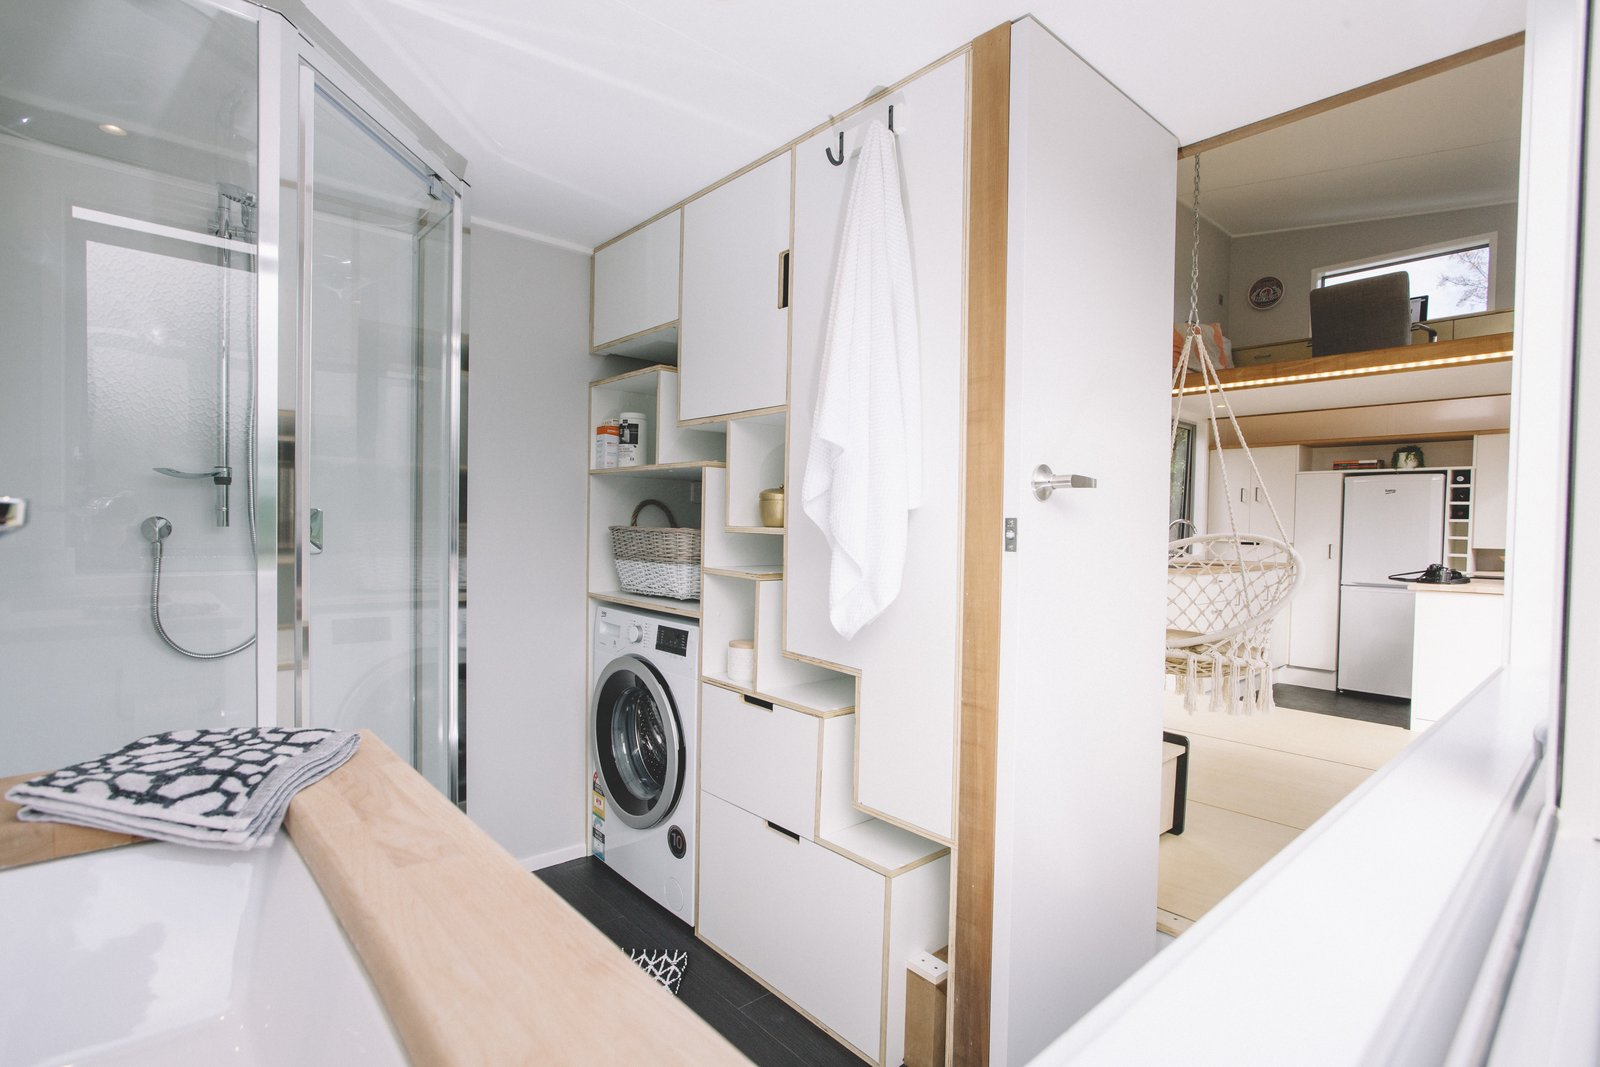 Millennial Tiny House bathroom